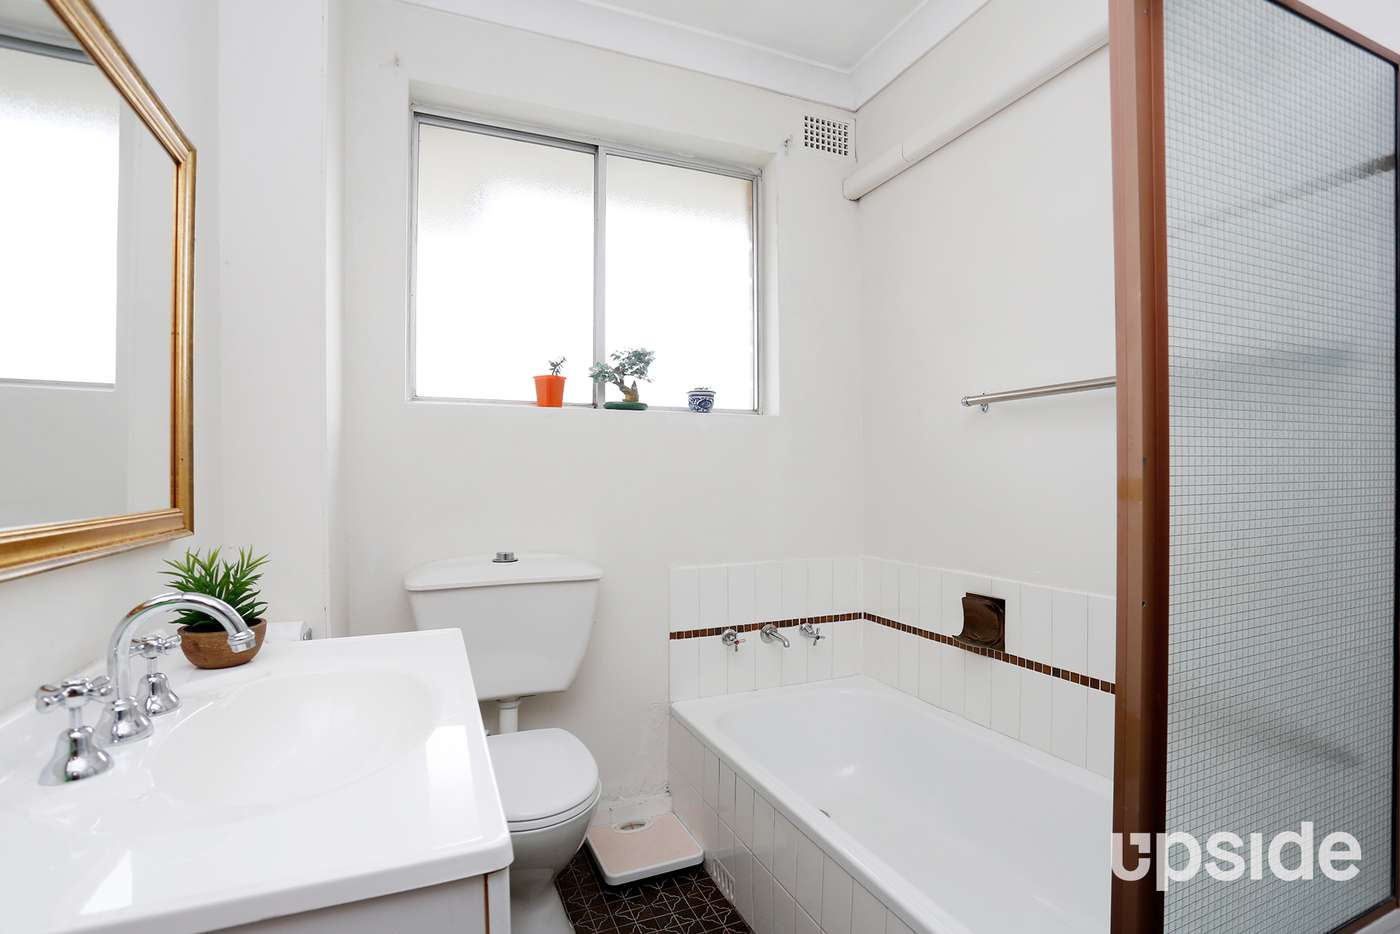 Seventh view of Homely unit listing, 30/10-16 Melrose Parade, Clovelly NSW 2031